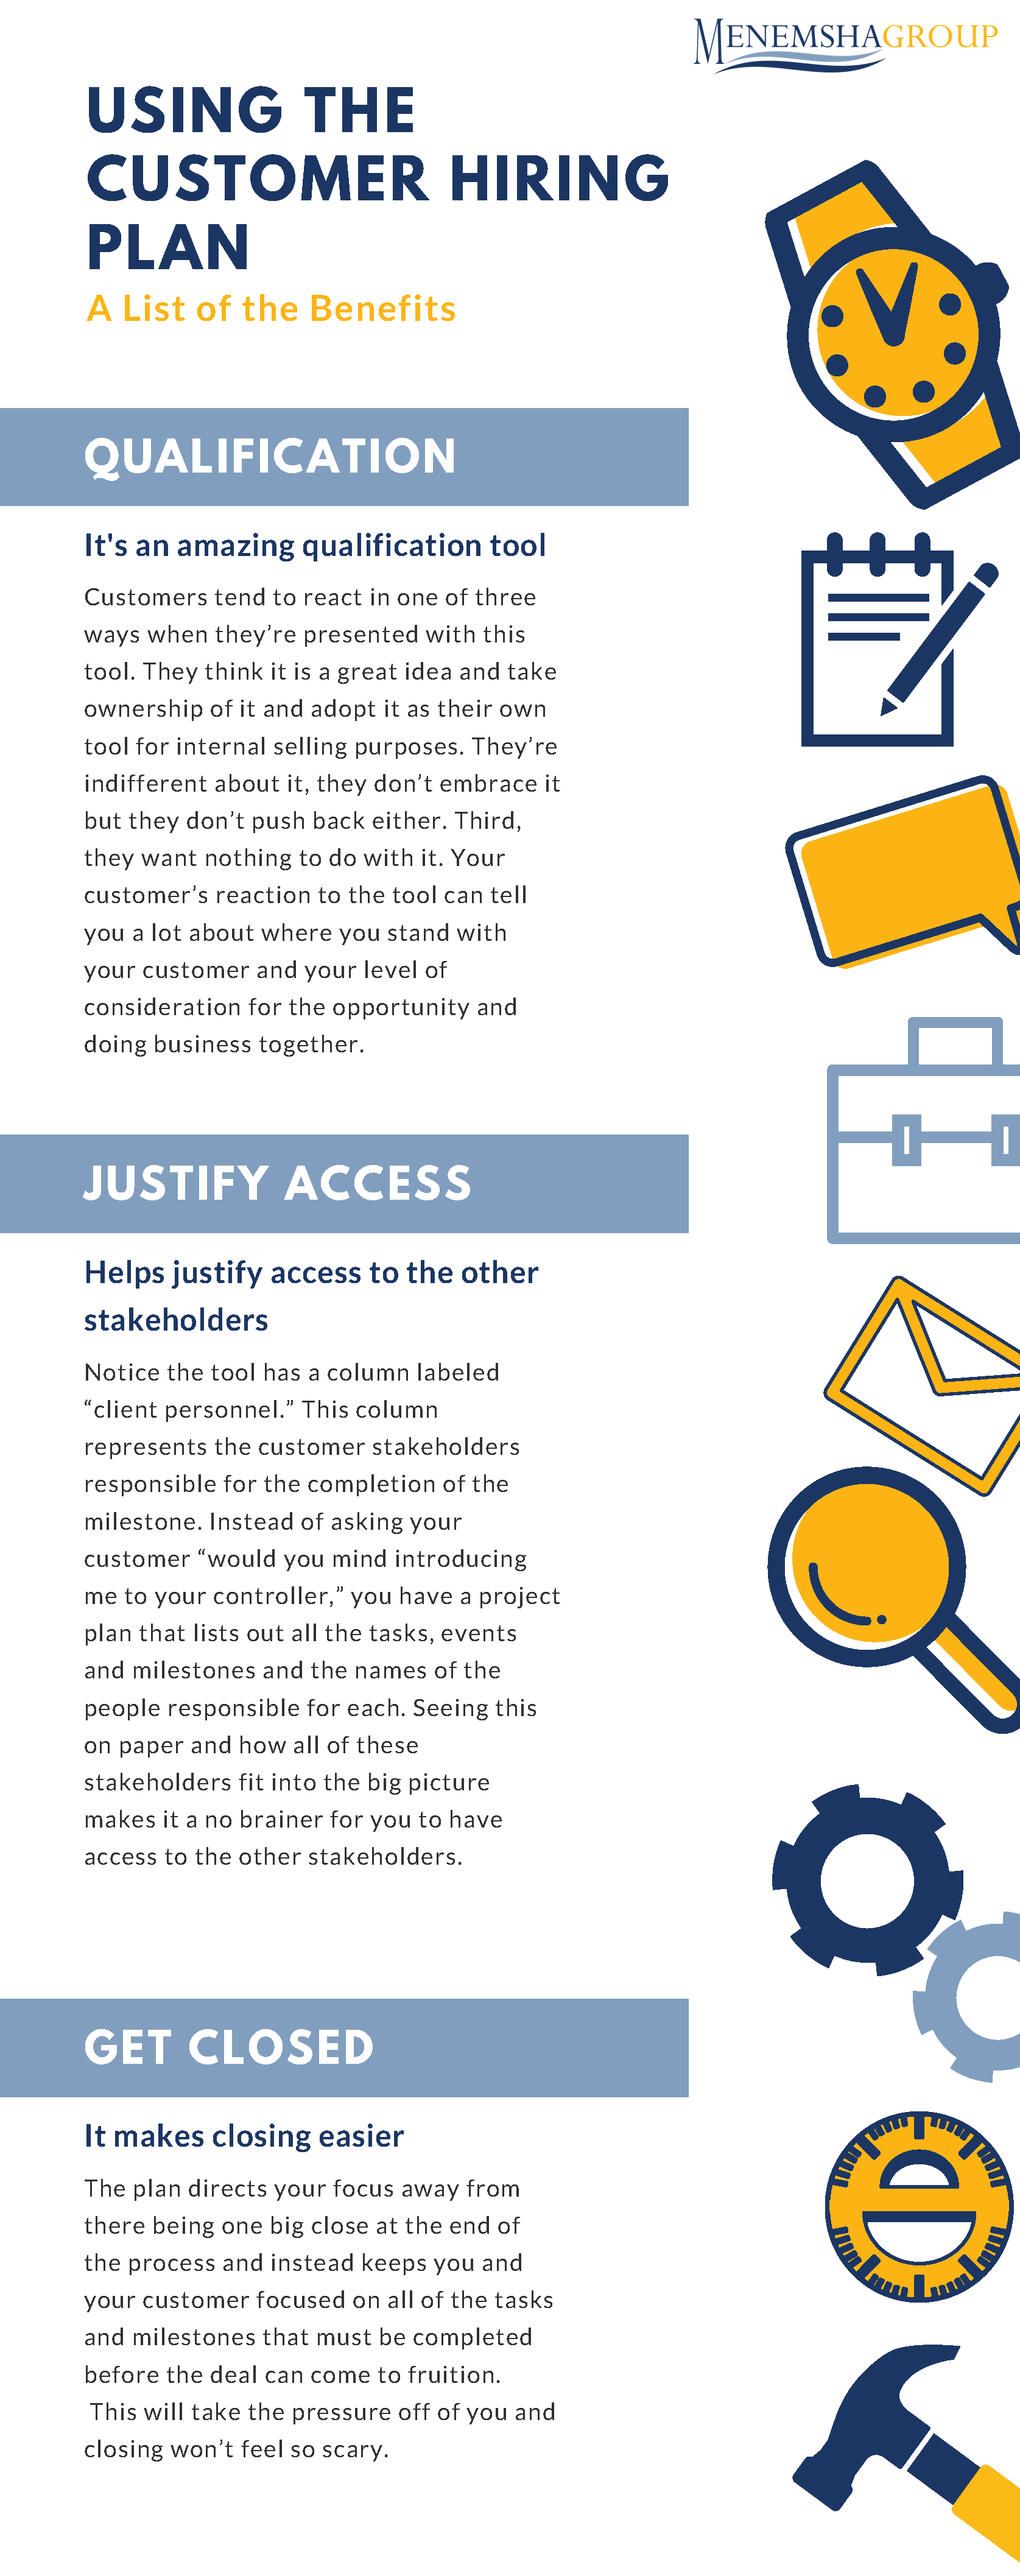 Customer Hiring Plan Benefitst of infographic (1)_Page_2